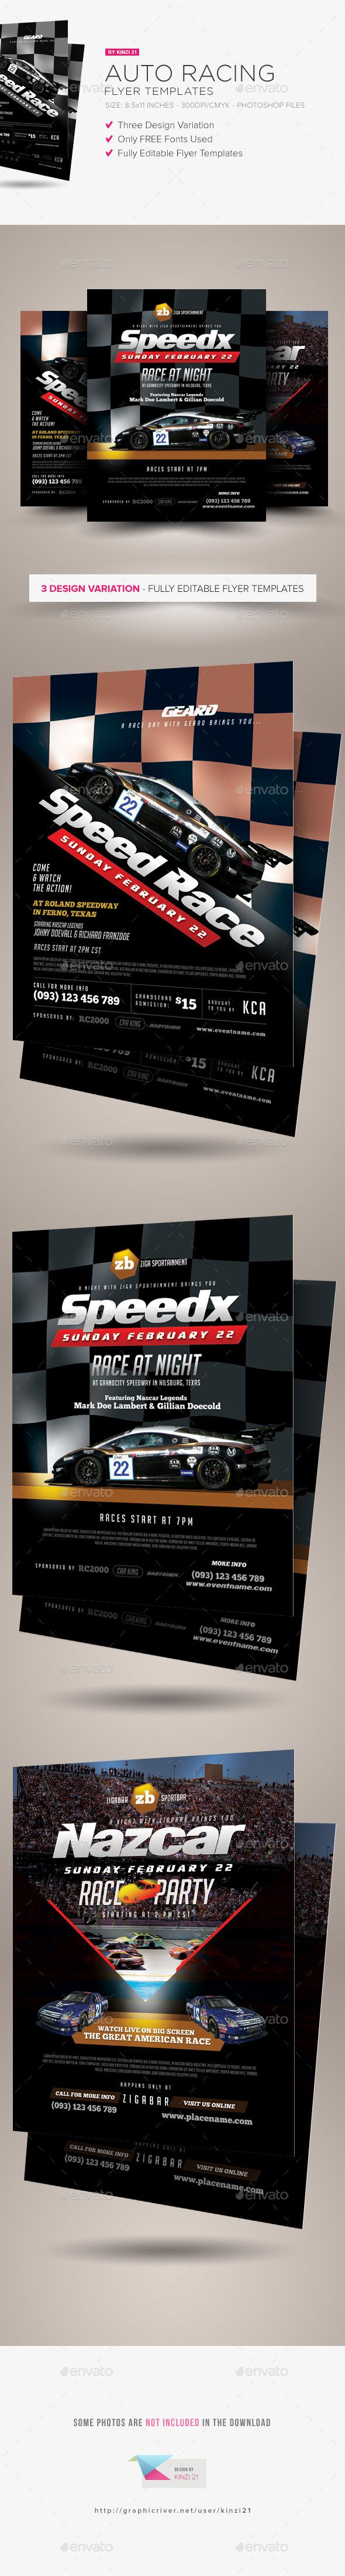 auto racing flyer template psd download here httpgraphicrivernetitemauto racing flyer templates14737404refksioks